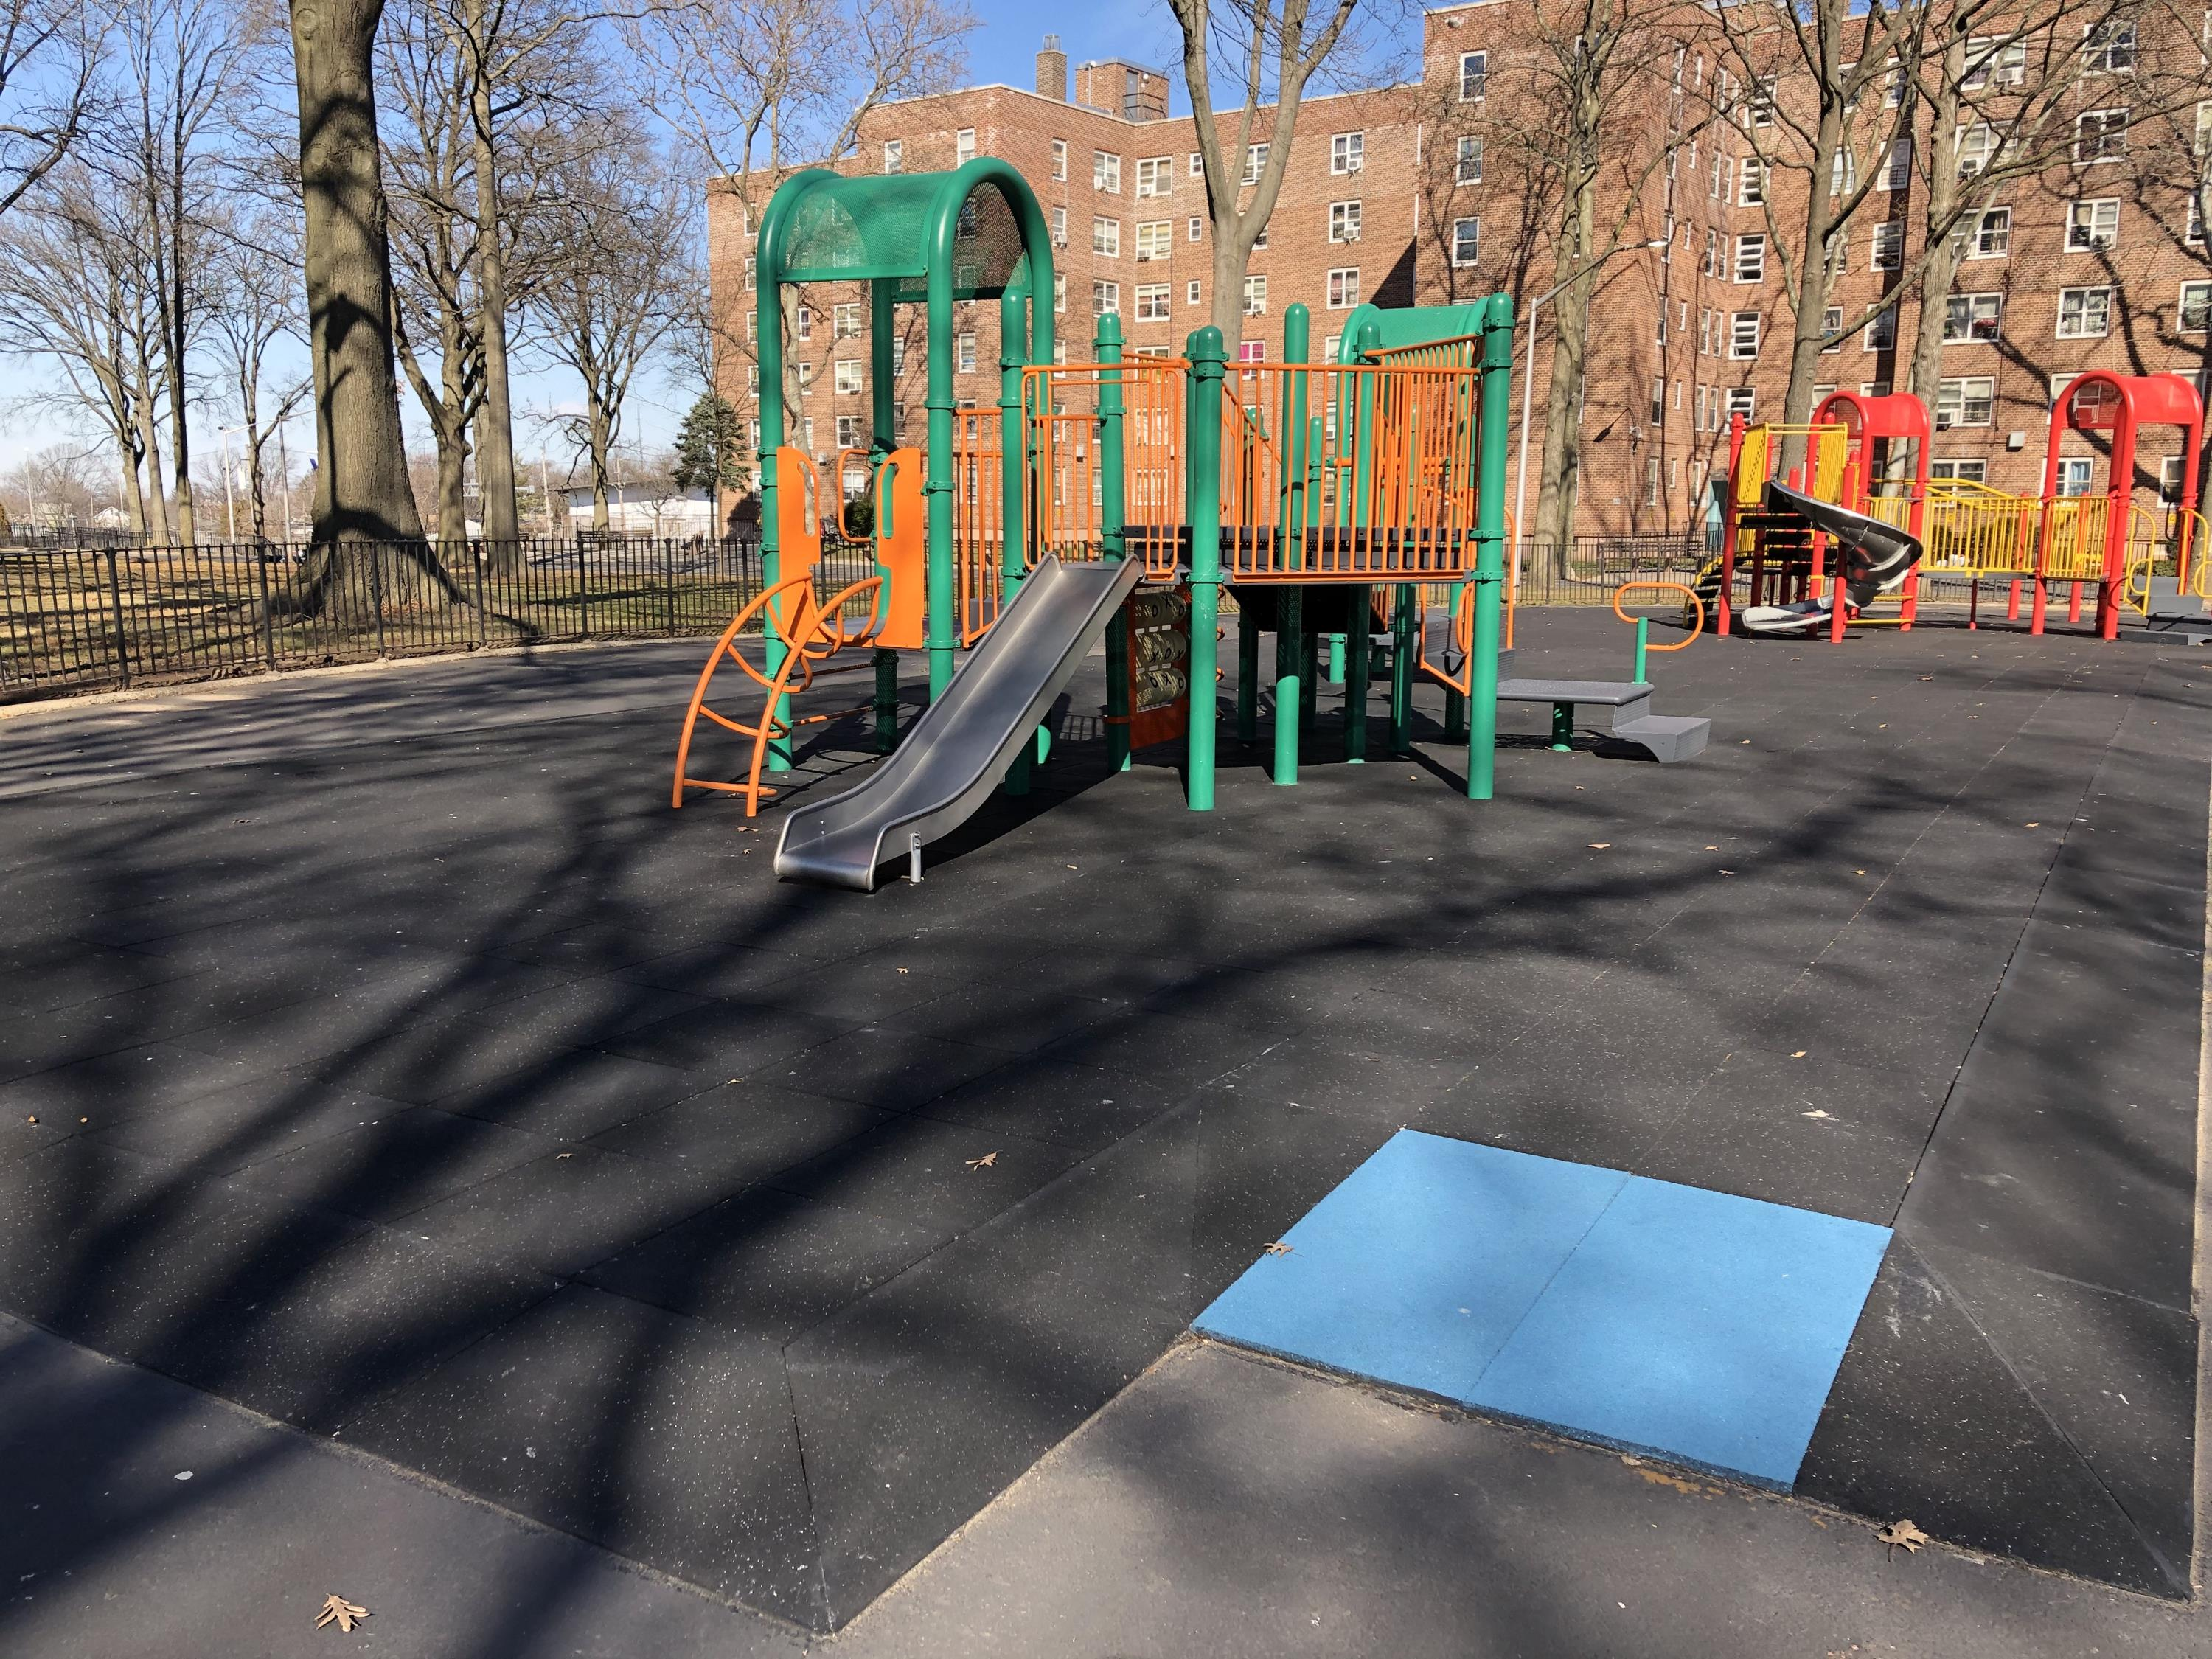 UNITY Safety Surfacing Showing Blue ADA Accessible Transitional Ramp for Playgrounds